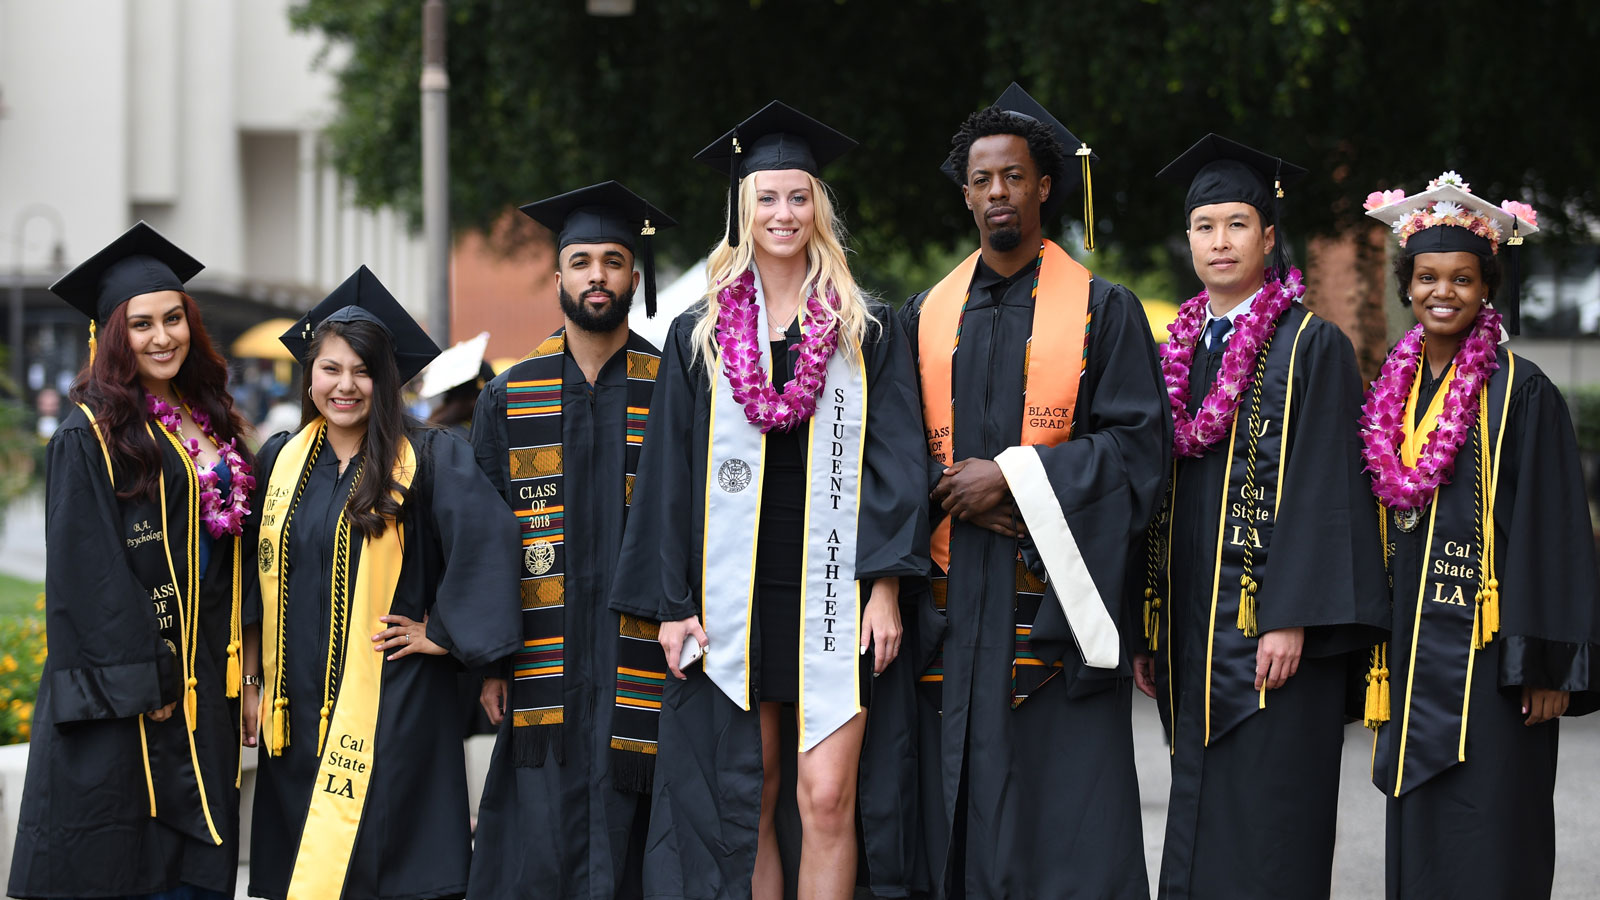 Cal State LA graduates posing with their caps and gowns